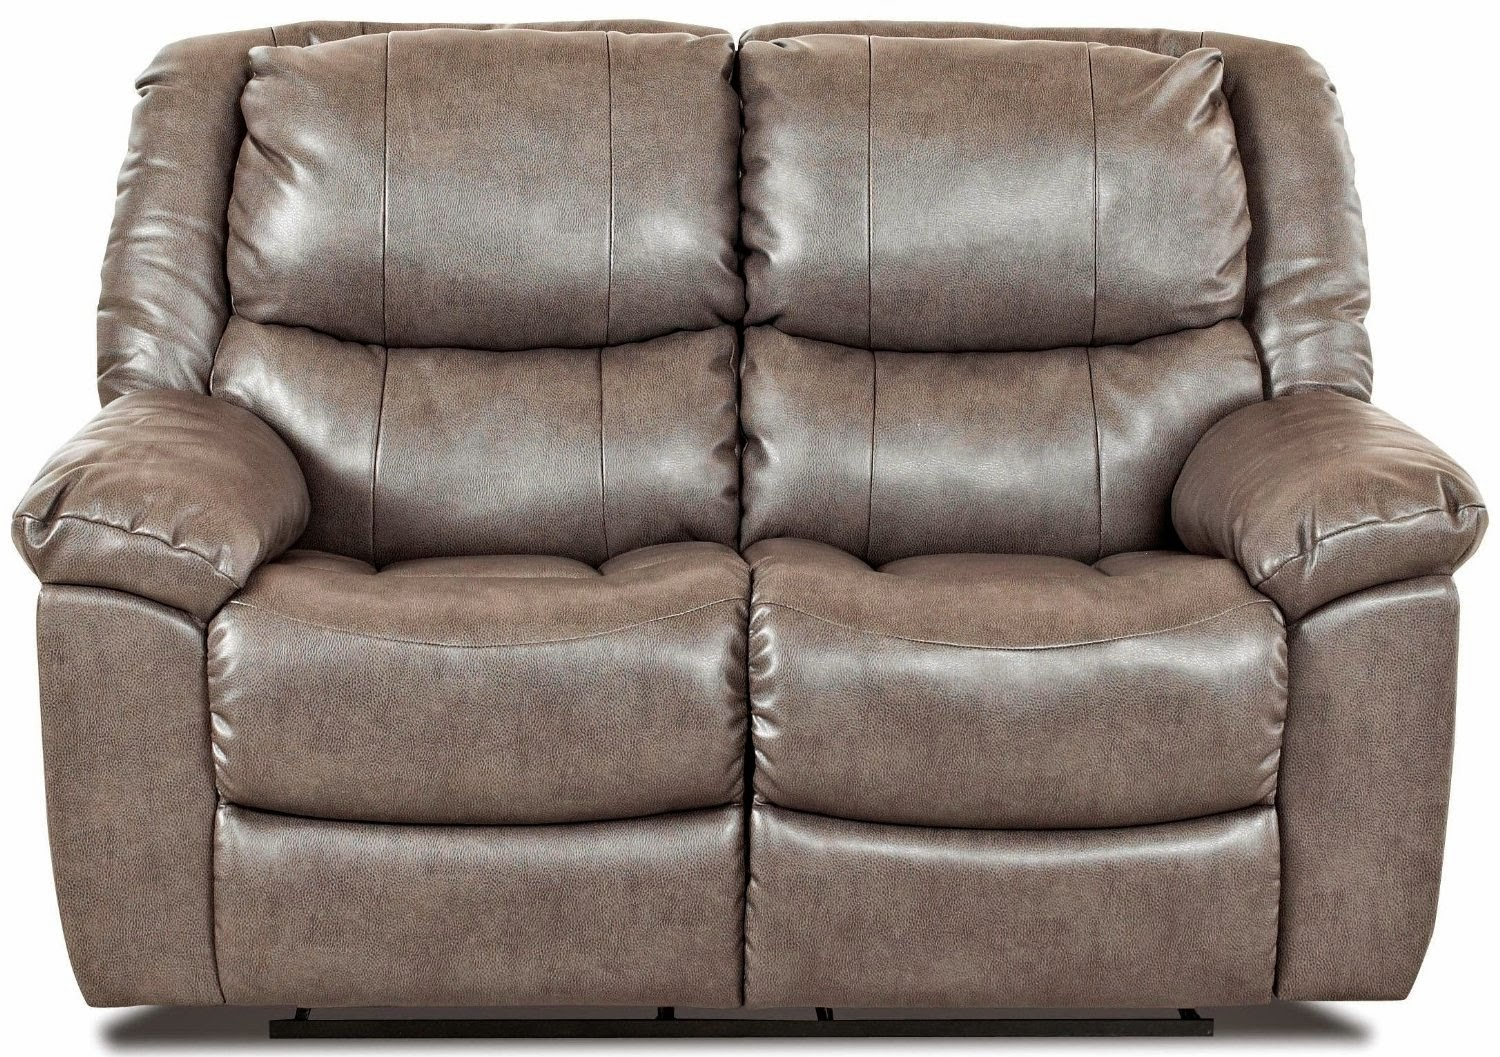 Best reclining sofa for the money klaussner bonded leather reclining sofa Leather reclining loveseat